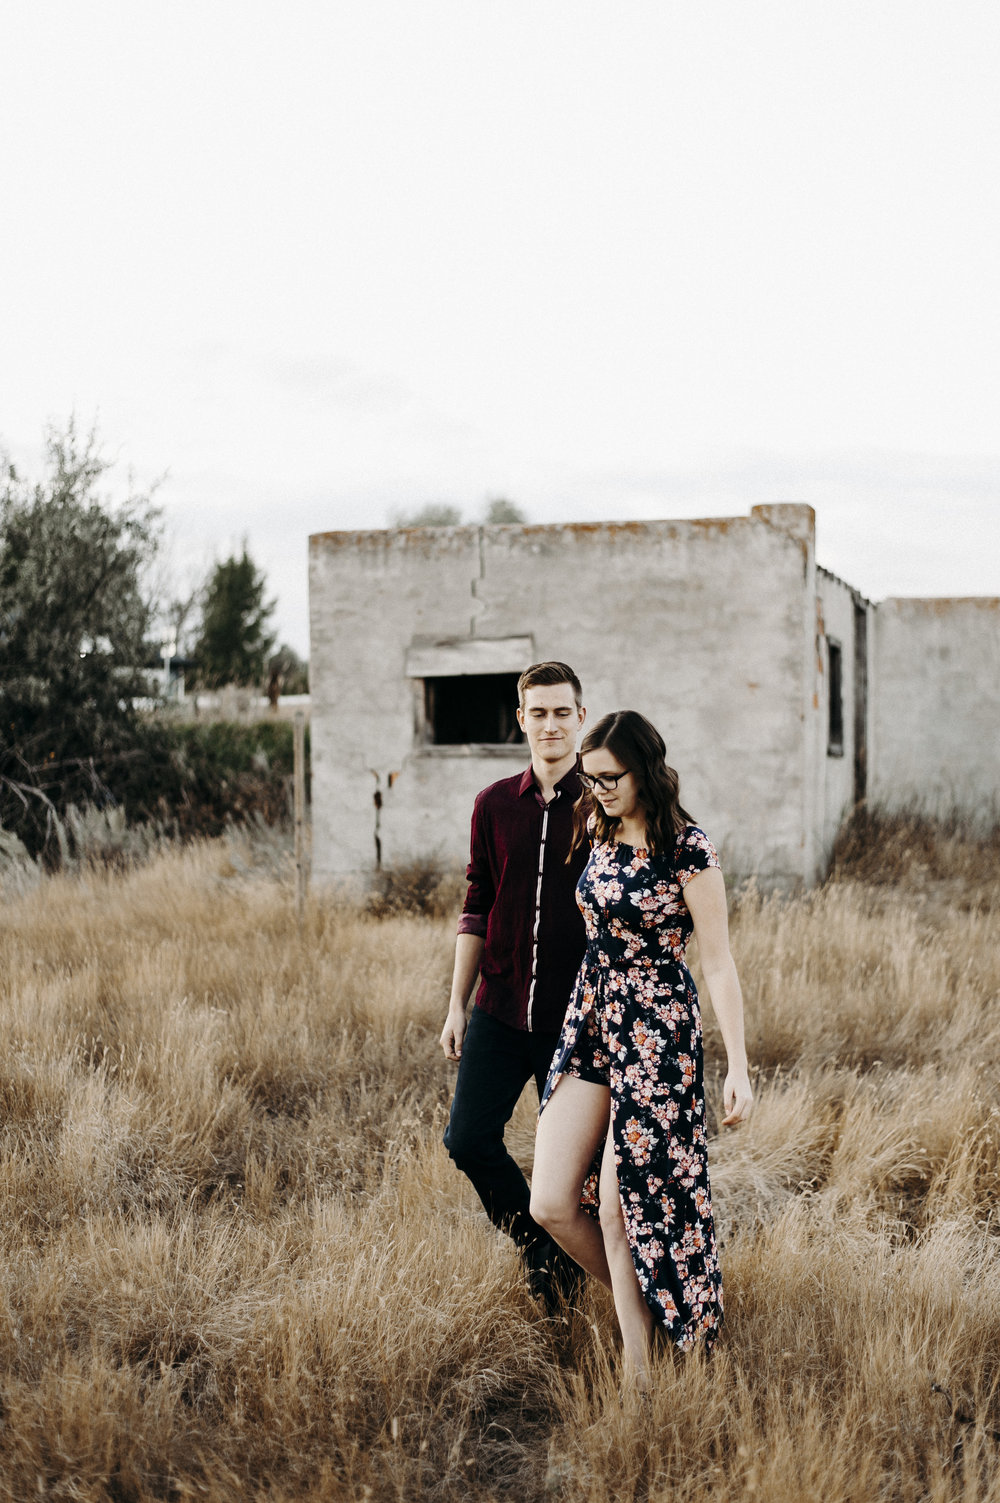 Medicine hat couples photography